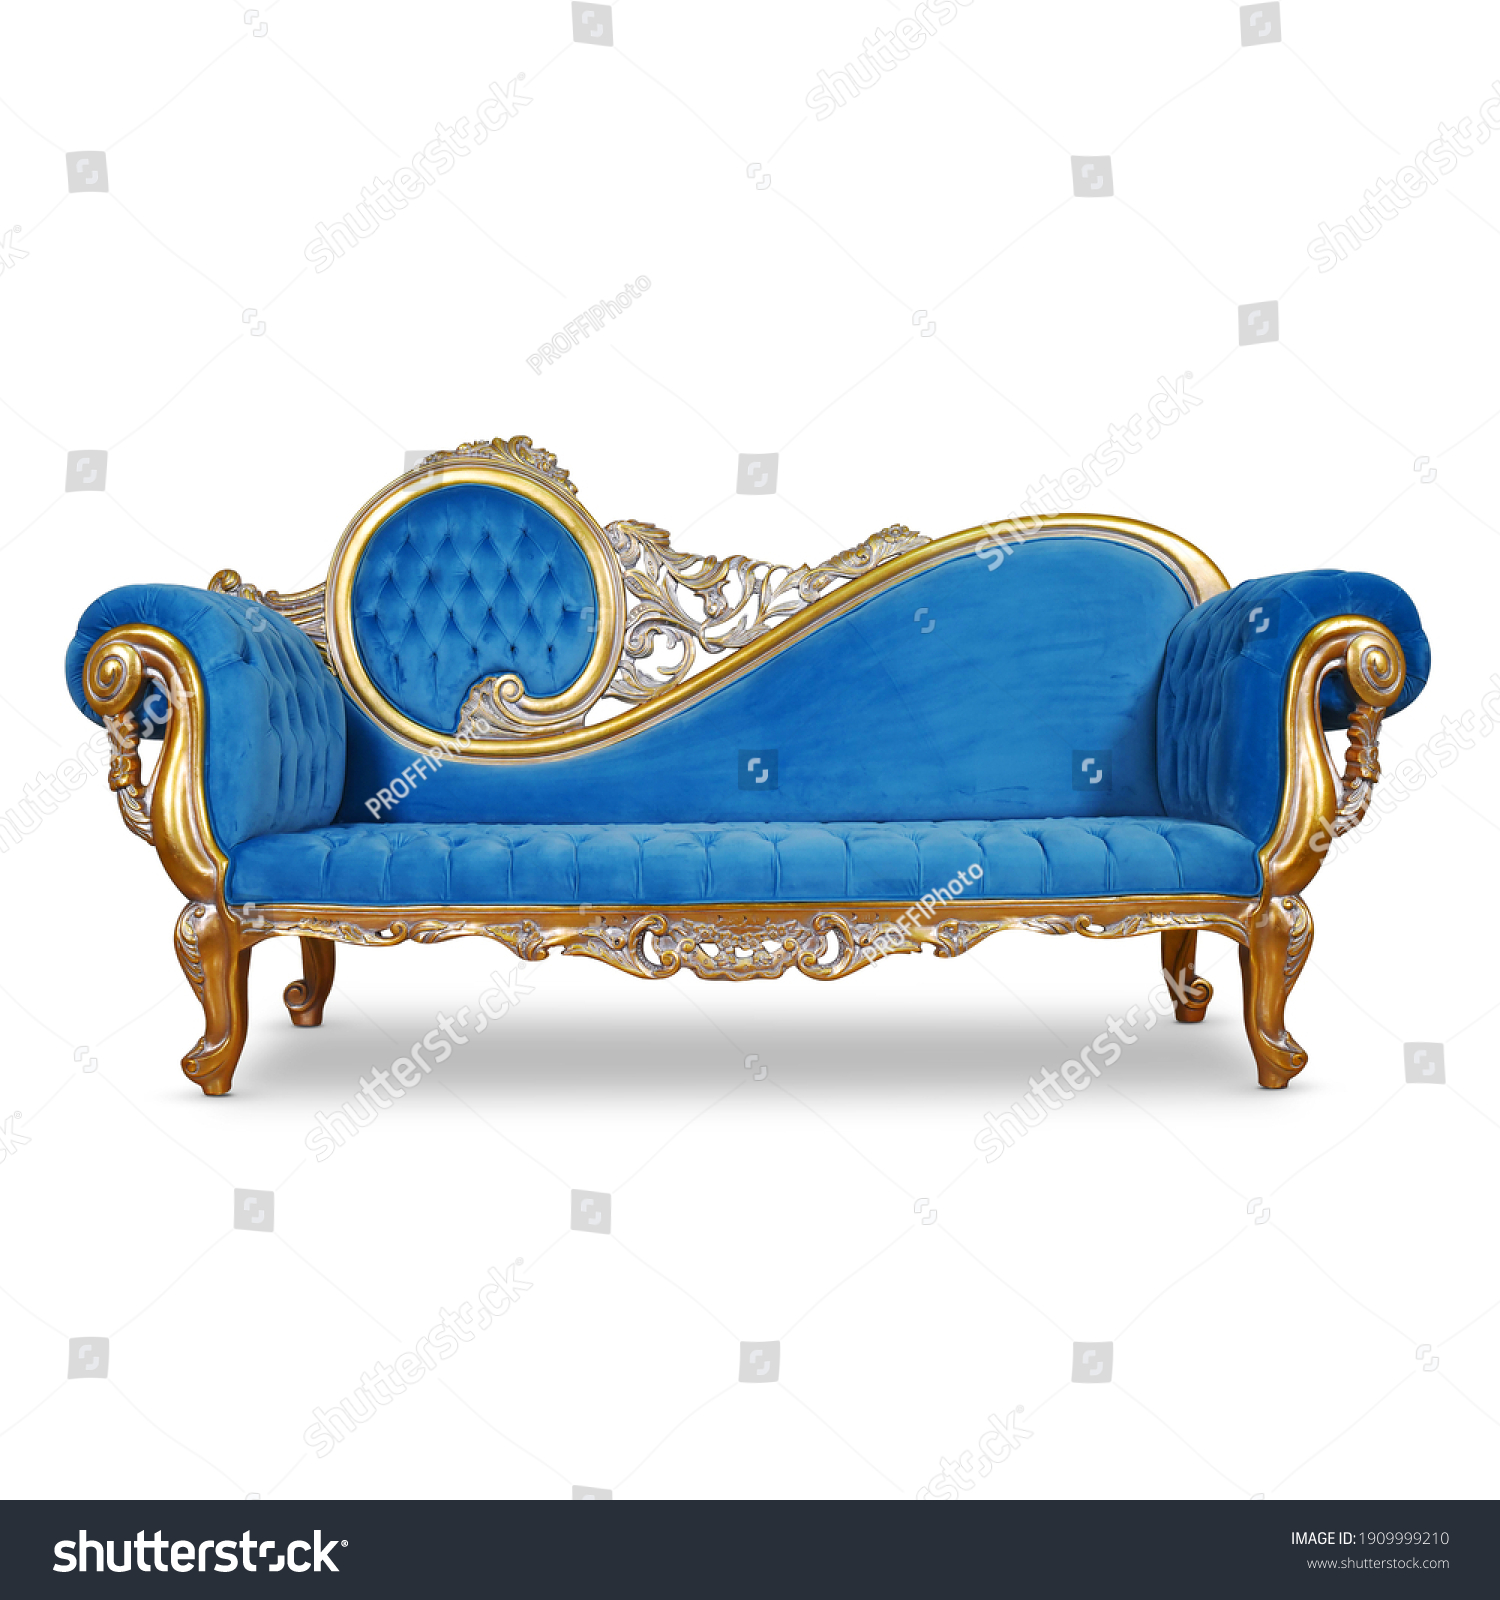 Tufted Blue Velvet Chaise Lounge Isolated. Antique Victorian Style Sofa Distressed Gold Giltwood Handcrafted Wooden Frame Giltwood Sweeping Scroll on Backrest. Upholstered Classic Interior Furniture #1909999210